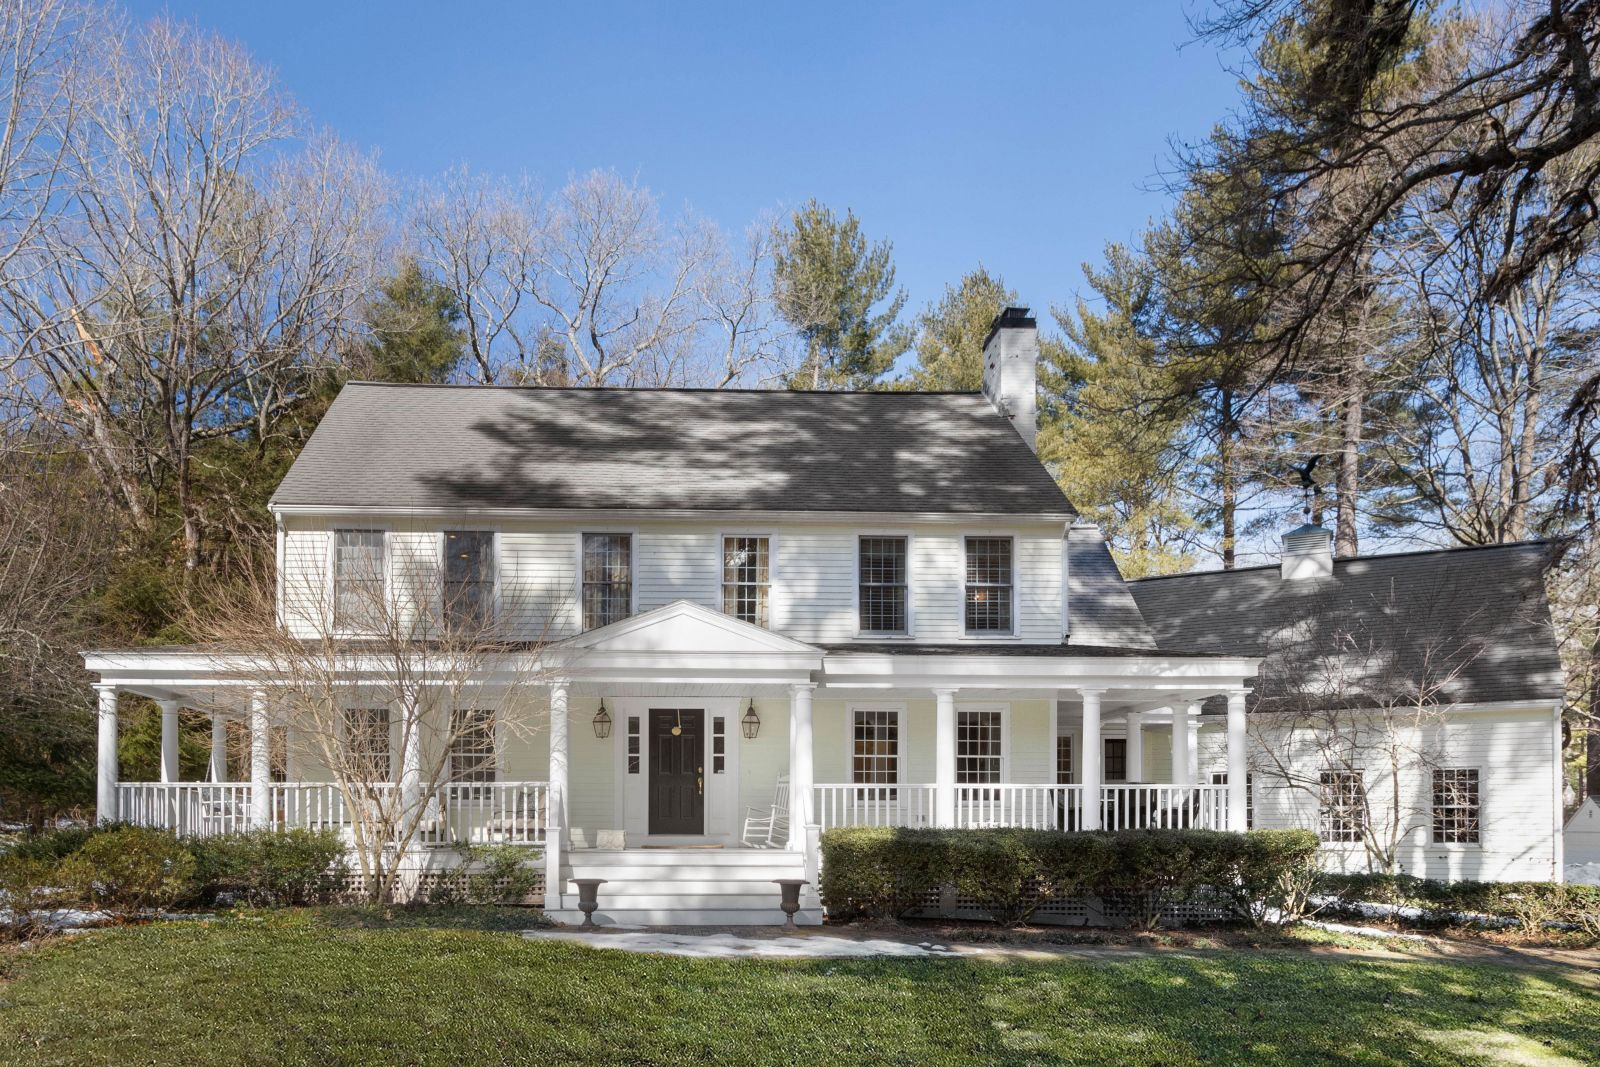 2 buttercup lane, Dover MA, for sale